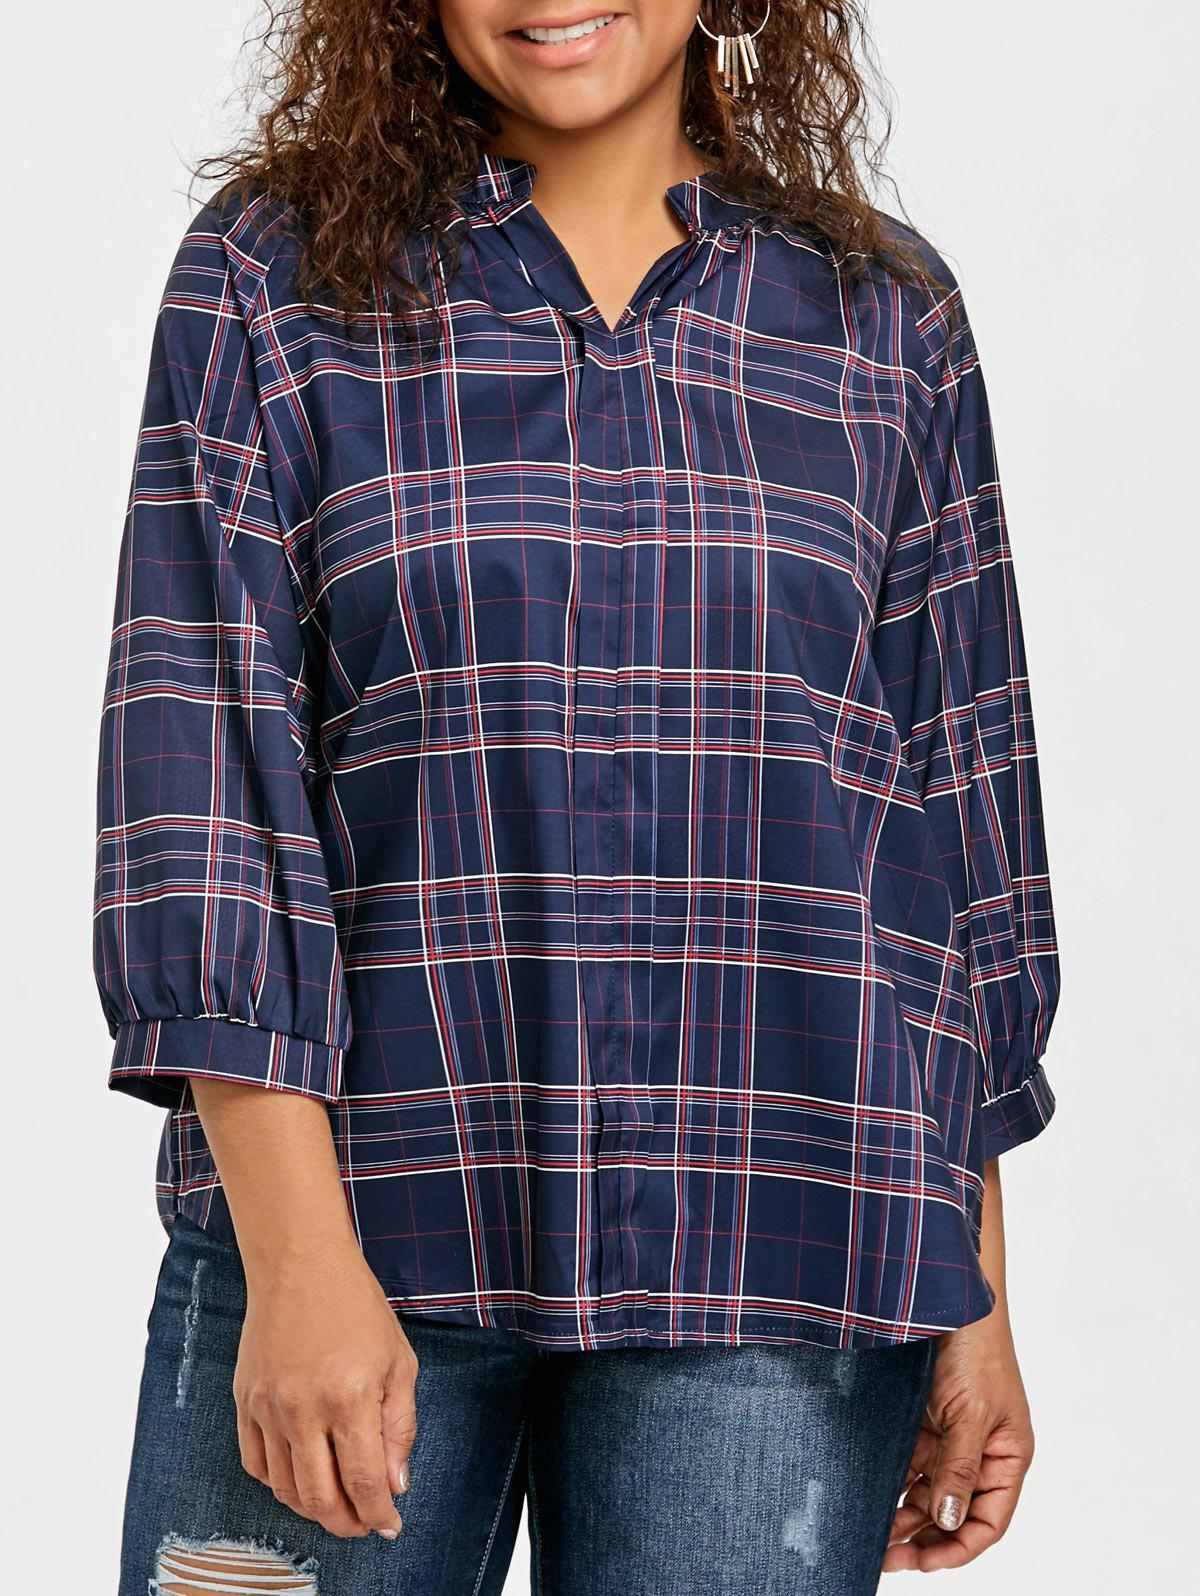 Plaid High Low Plus Size Blouse alfani new black women s size small s mesh back high low ribbed blouse $59 259